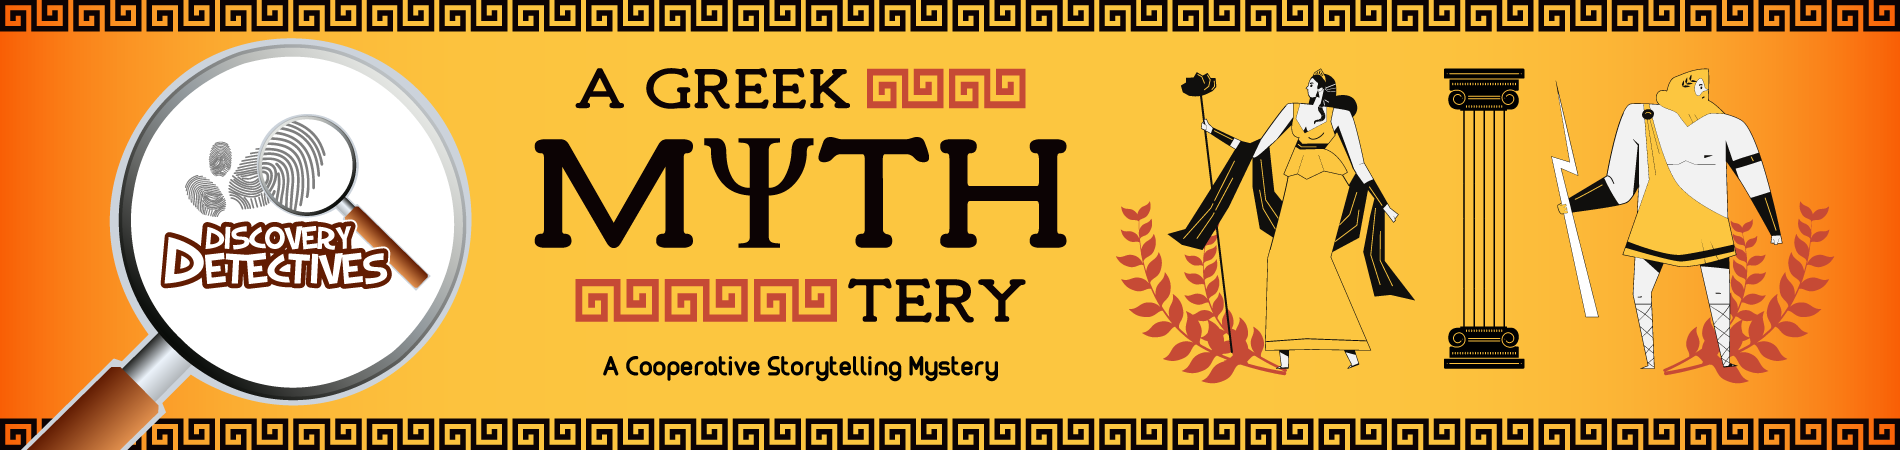 Discovery Detectives: A Greek Mythtery